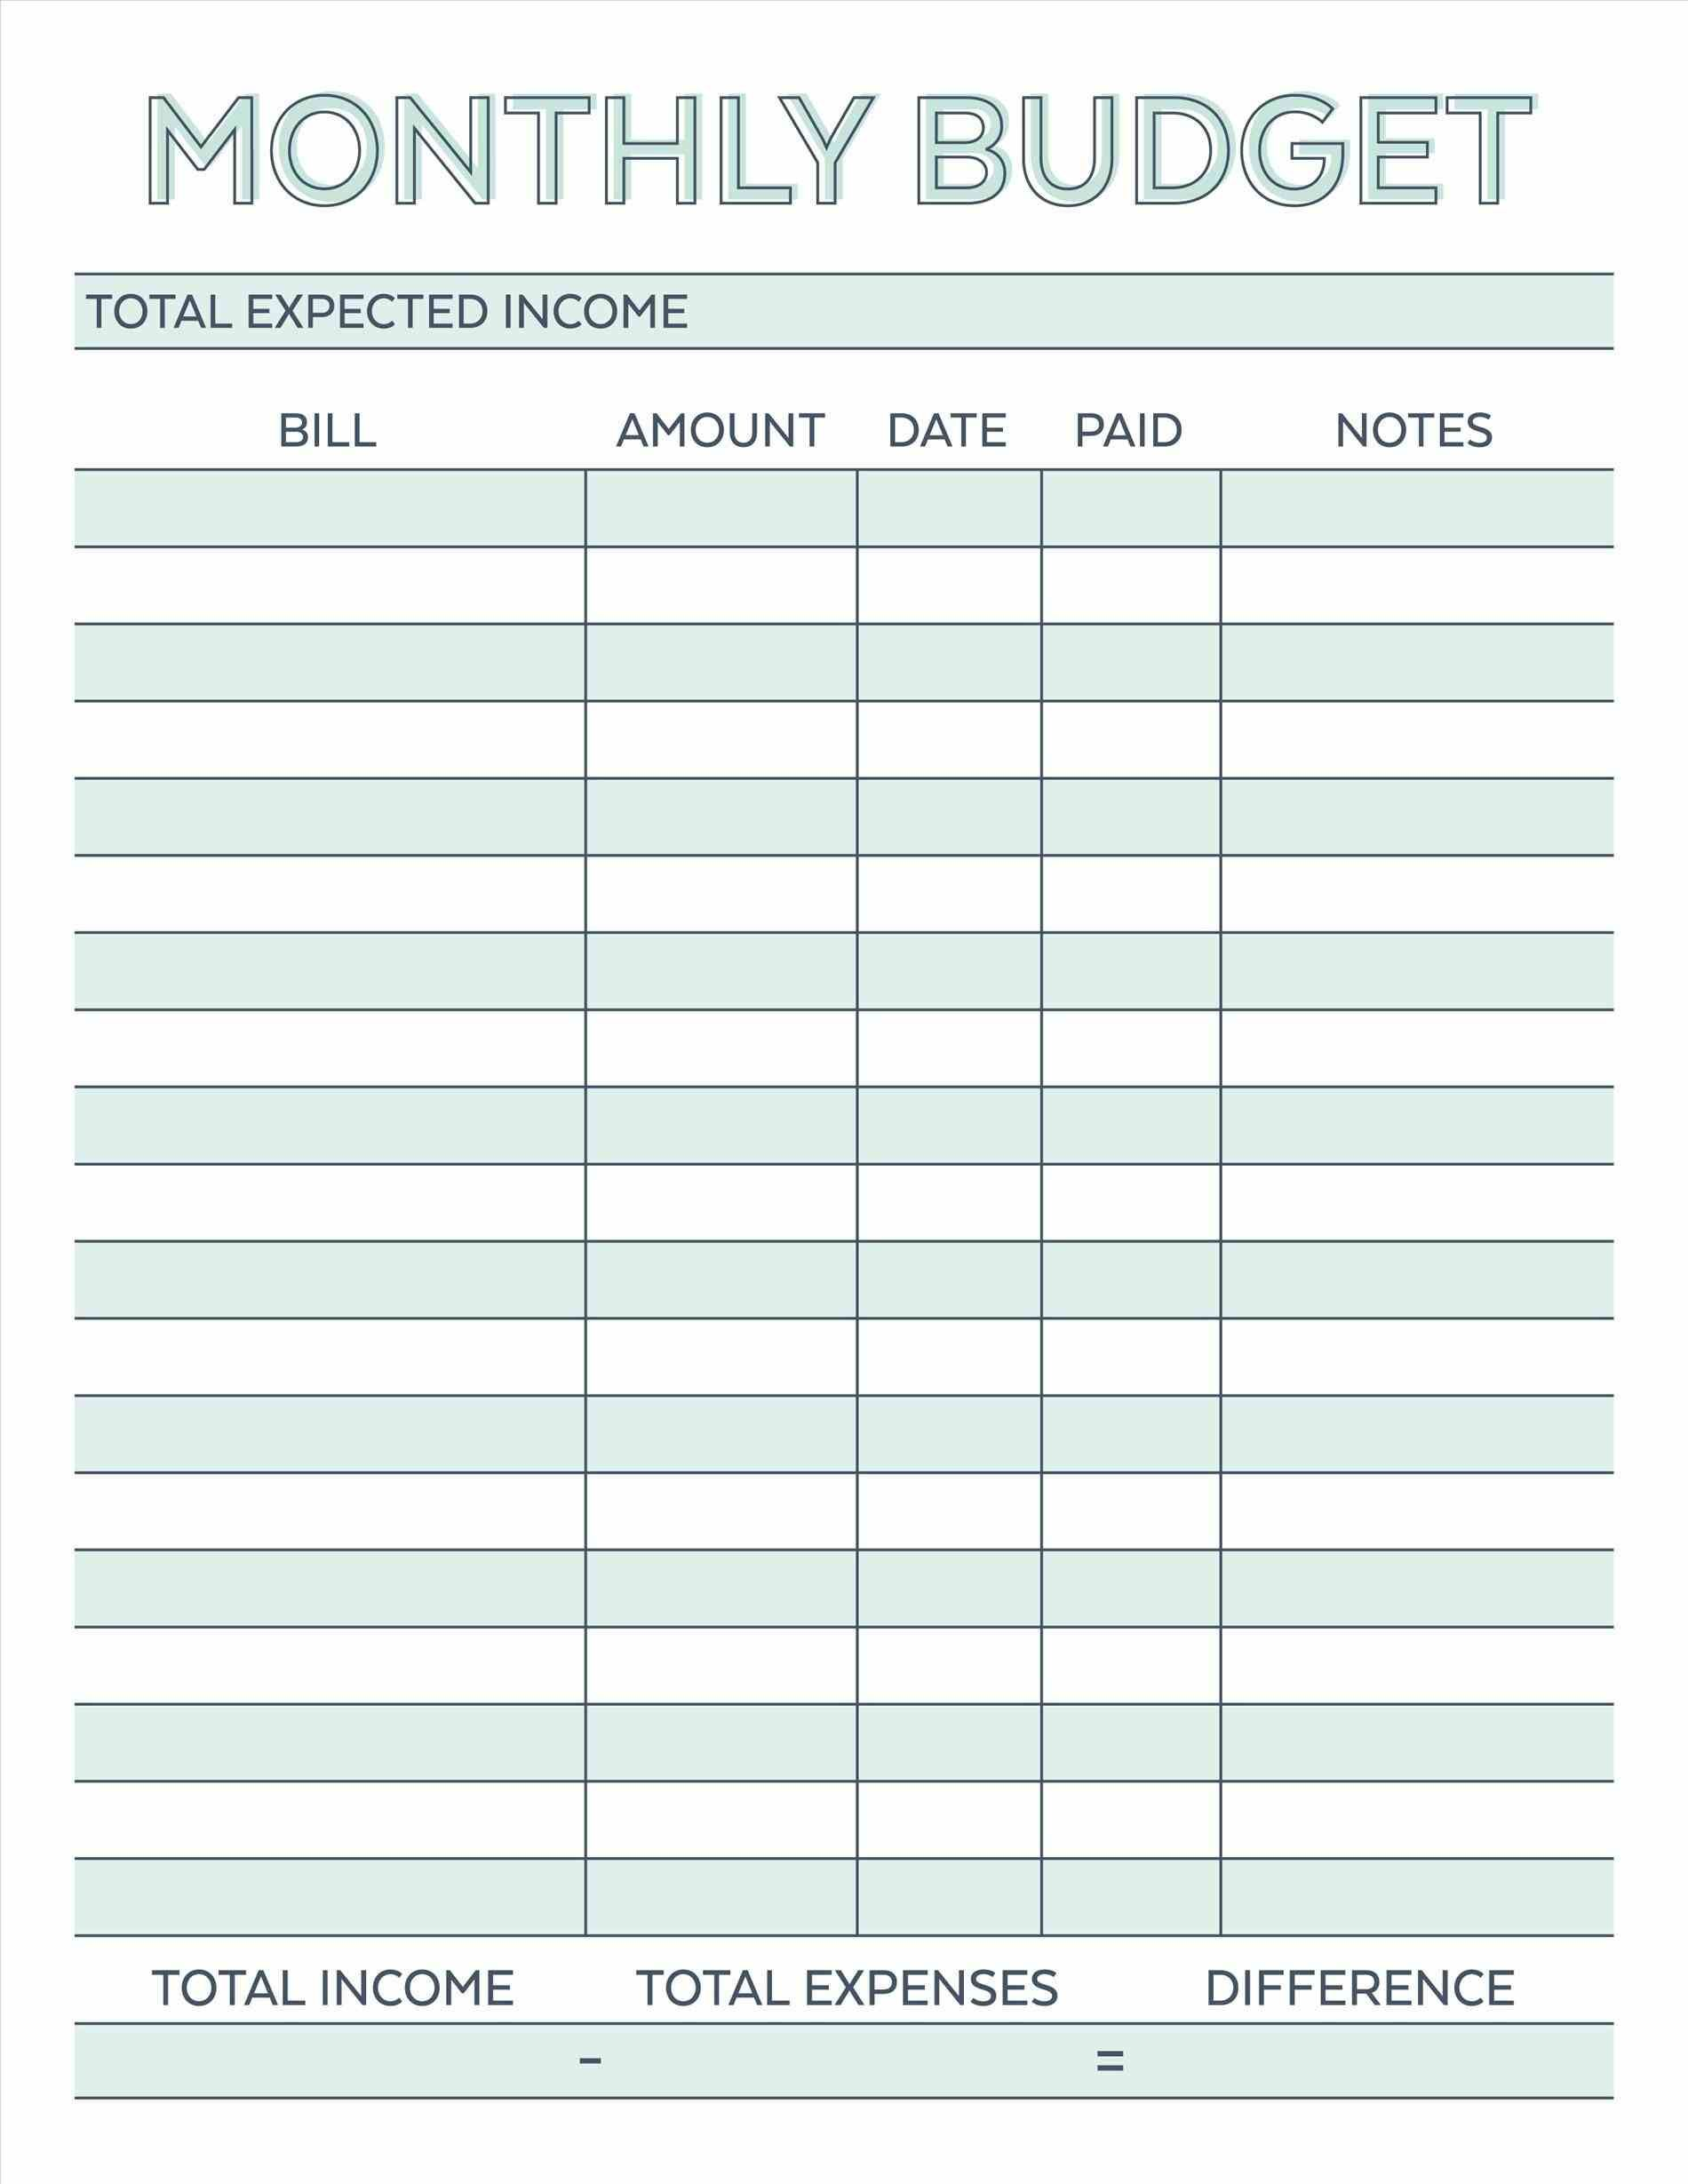 Worksheets Low Income Budget Worksheet budget planner worksheet monthly bills template free printable simple monthly